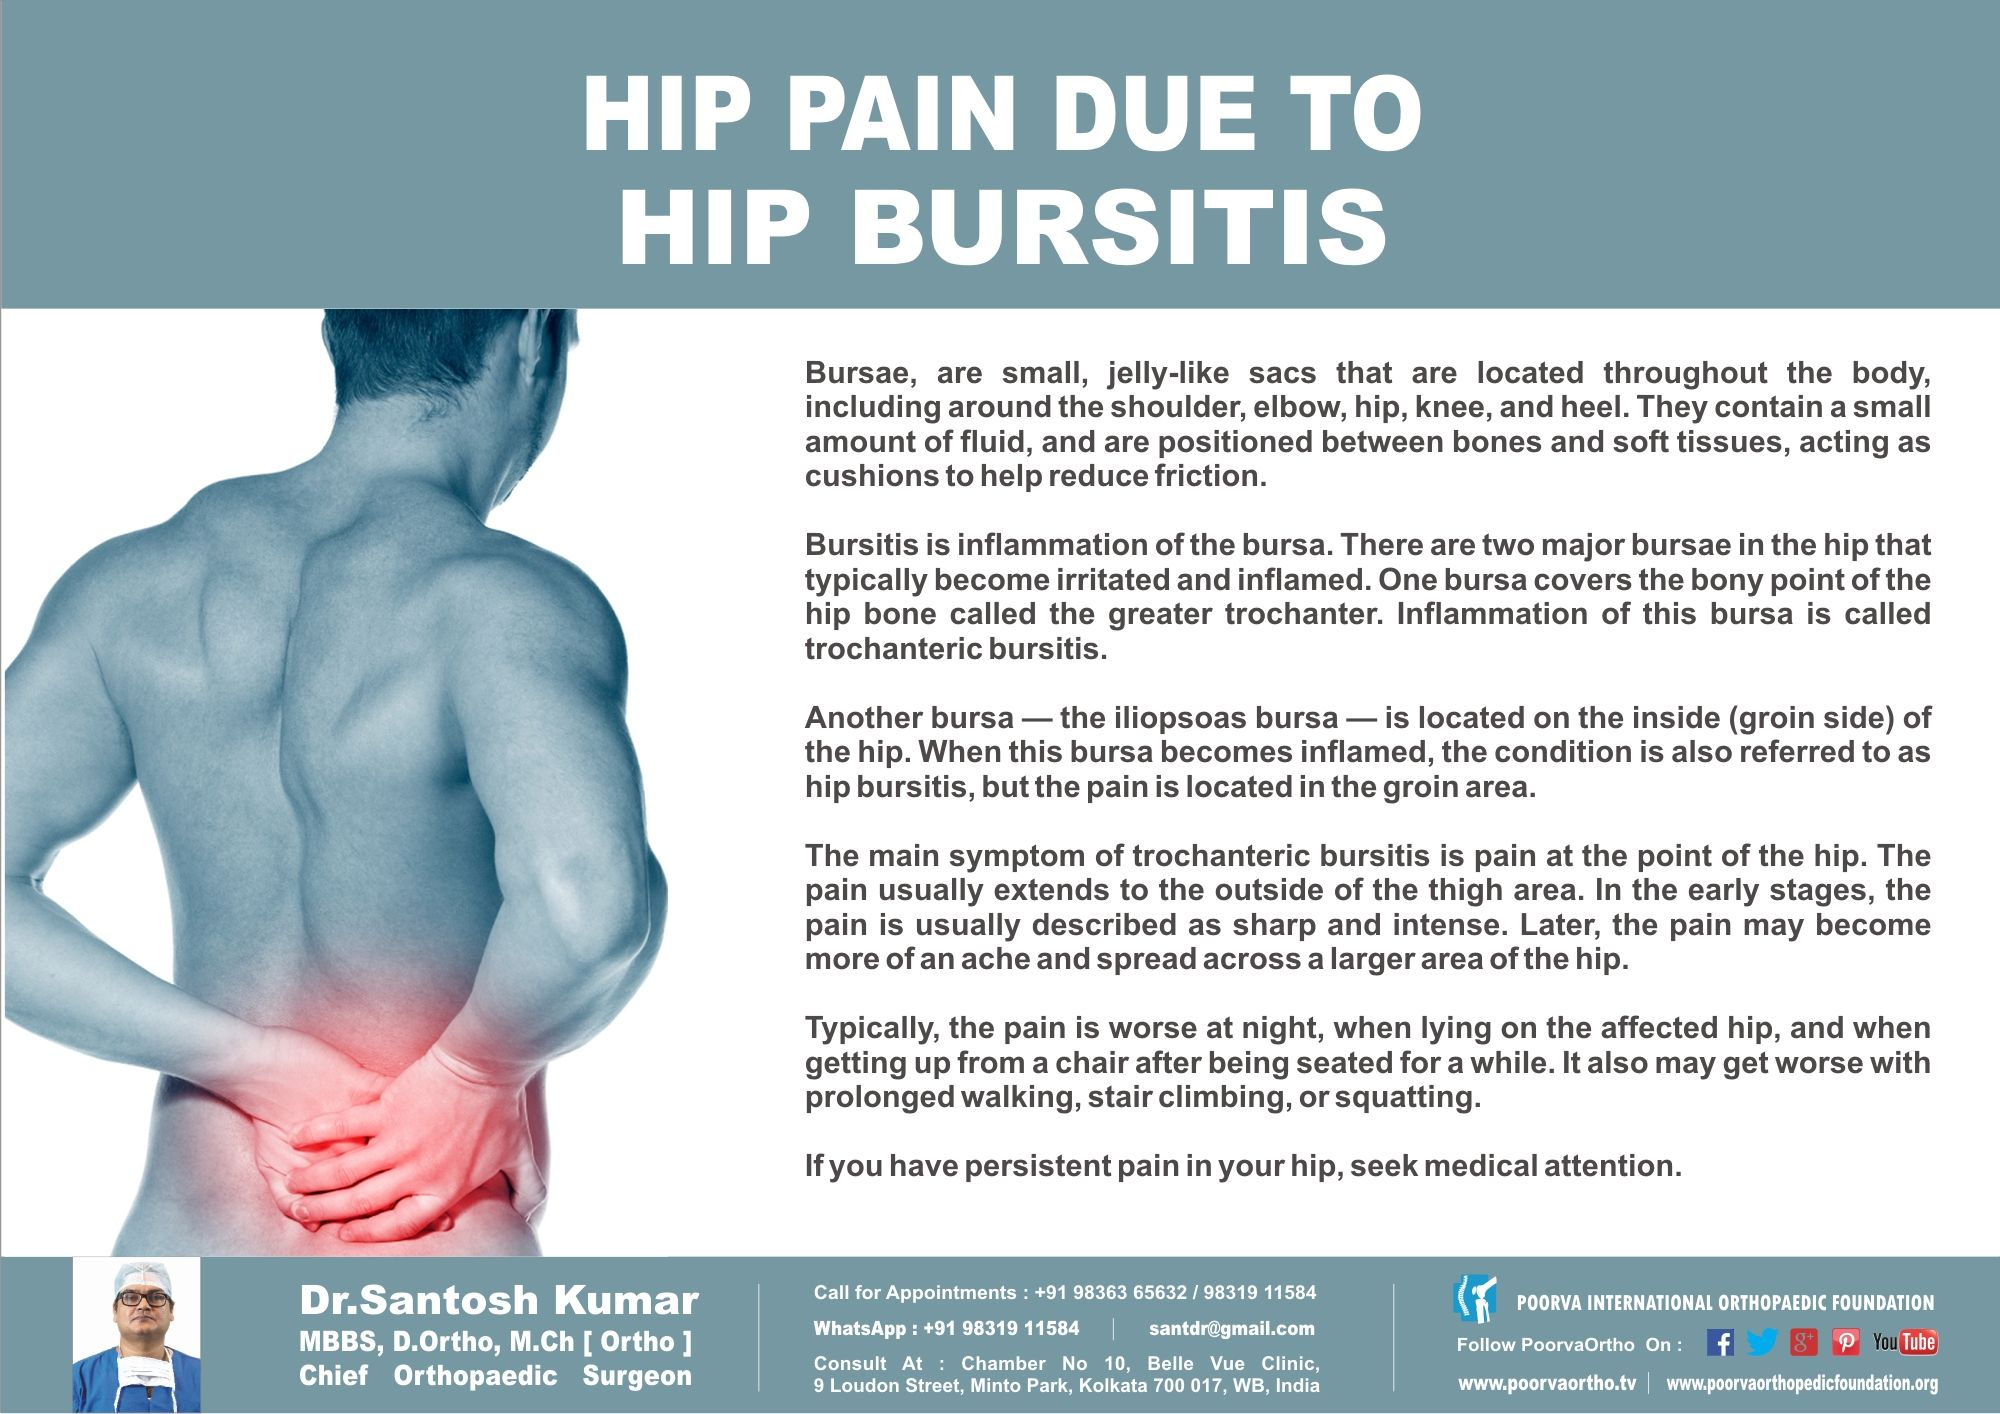 Hip pain due to Bursitis. Know it. Check if you have the symptoms ...